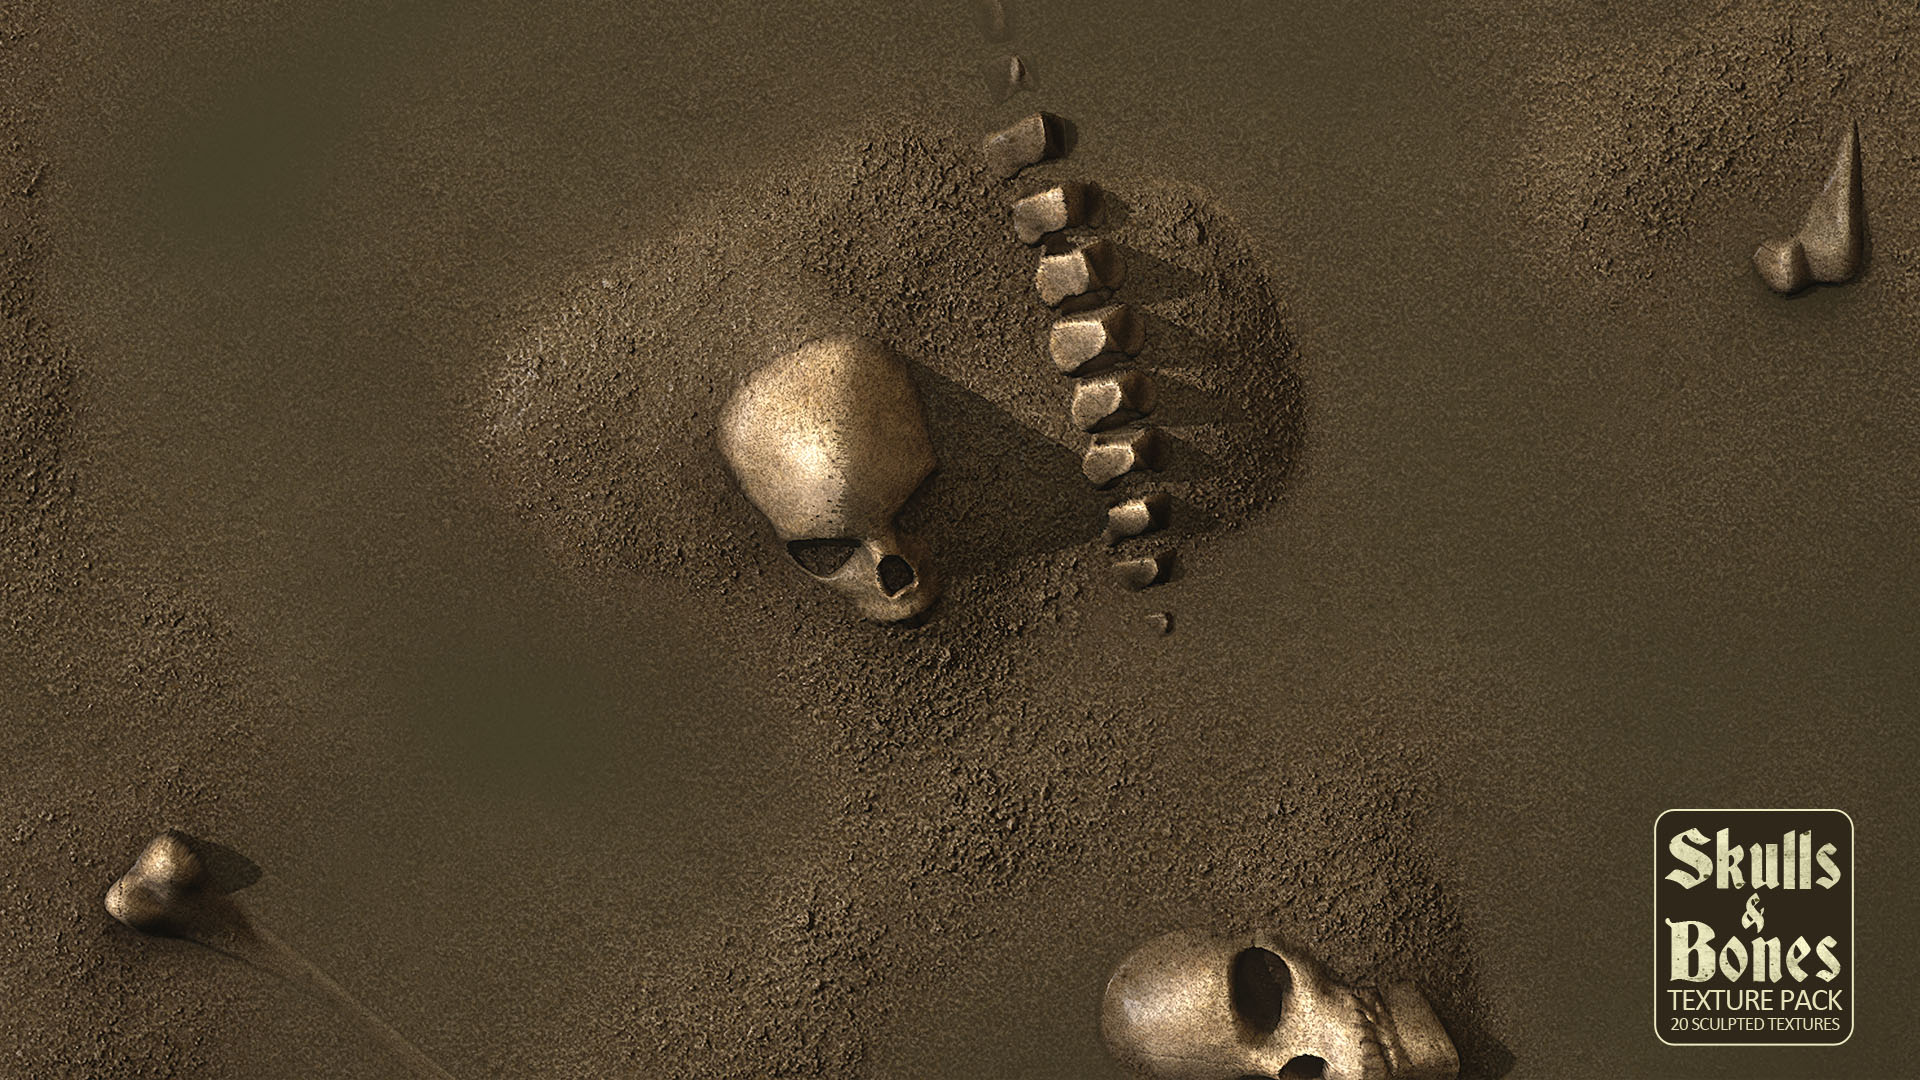 Skulls And Bones Textures by R33K in Materials - UE4 Marketplace